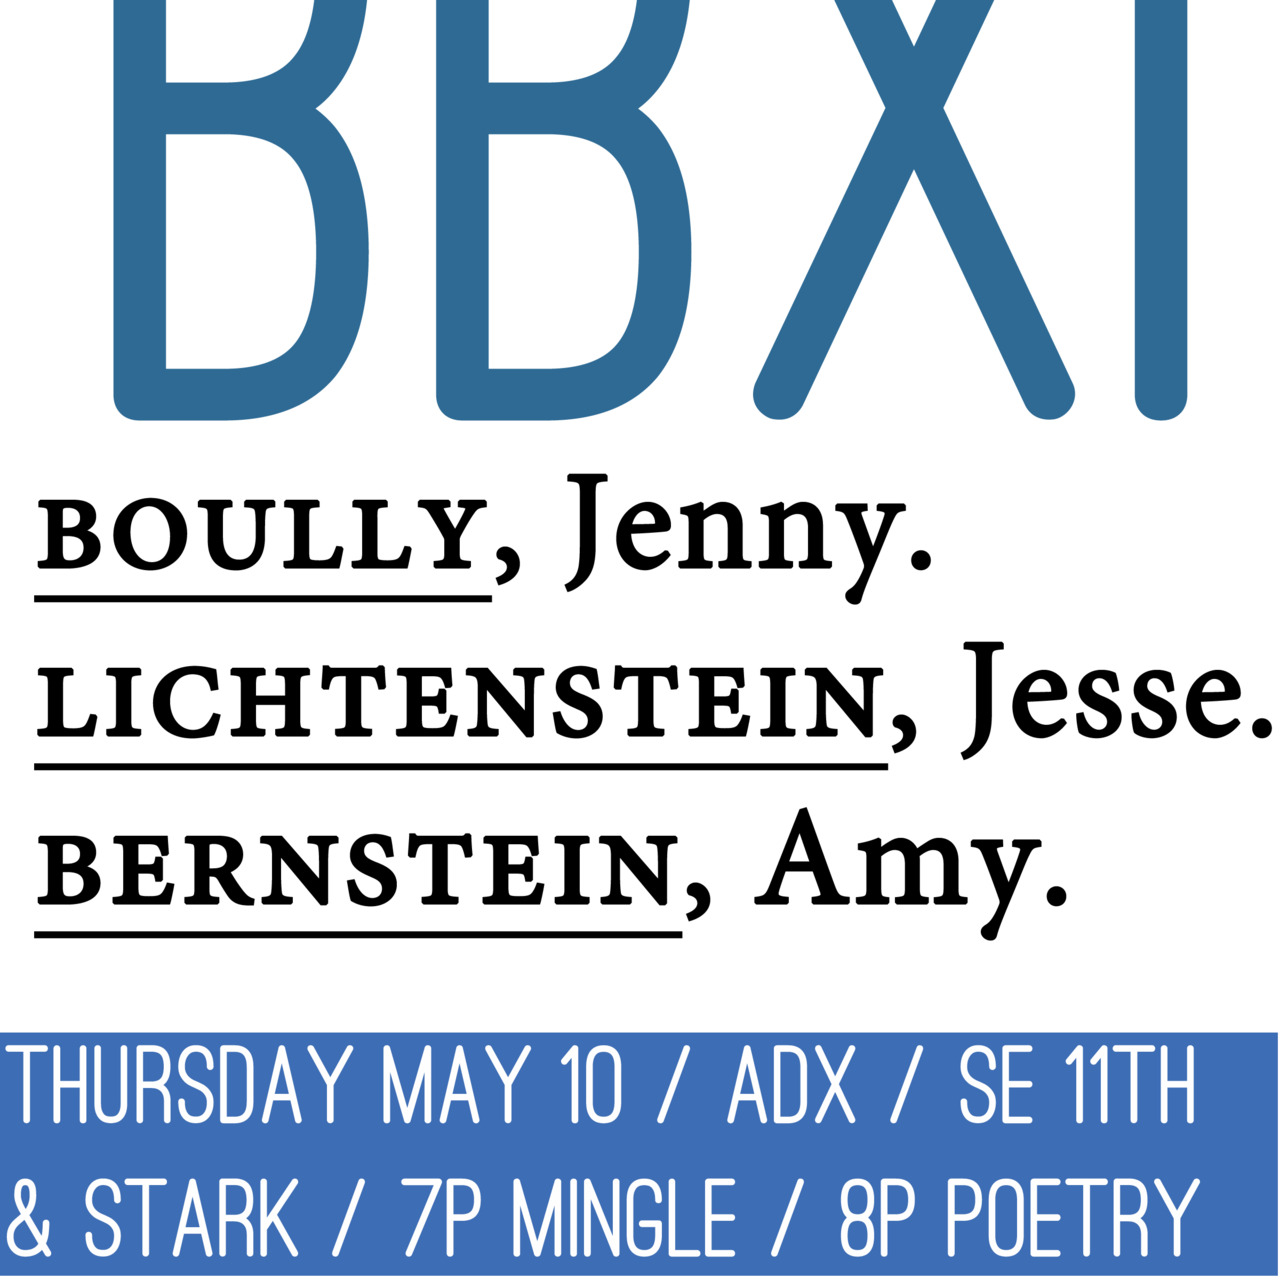 BAD BLOOD XI. Keeping it bloody. See you next Thursday.